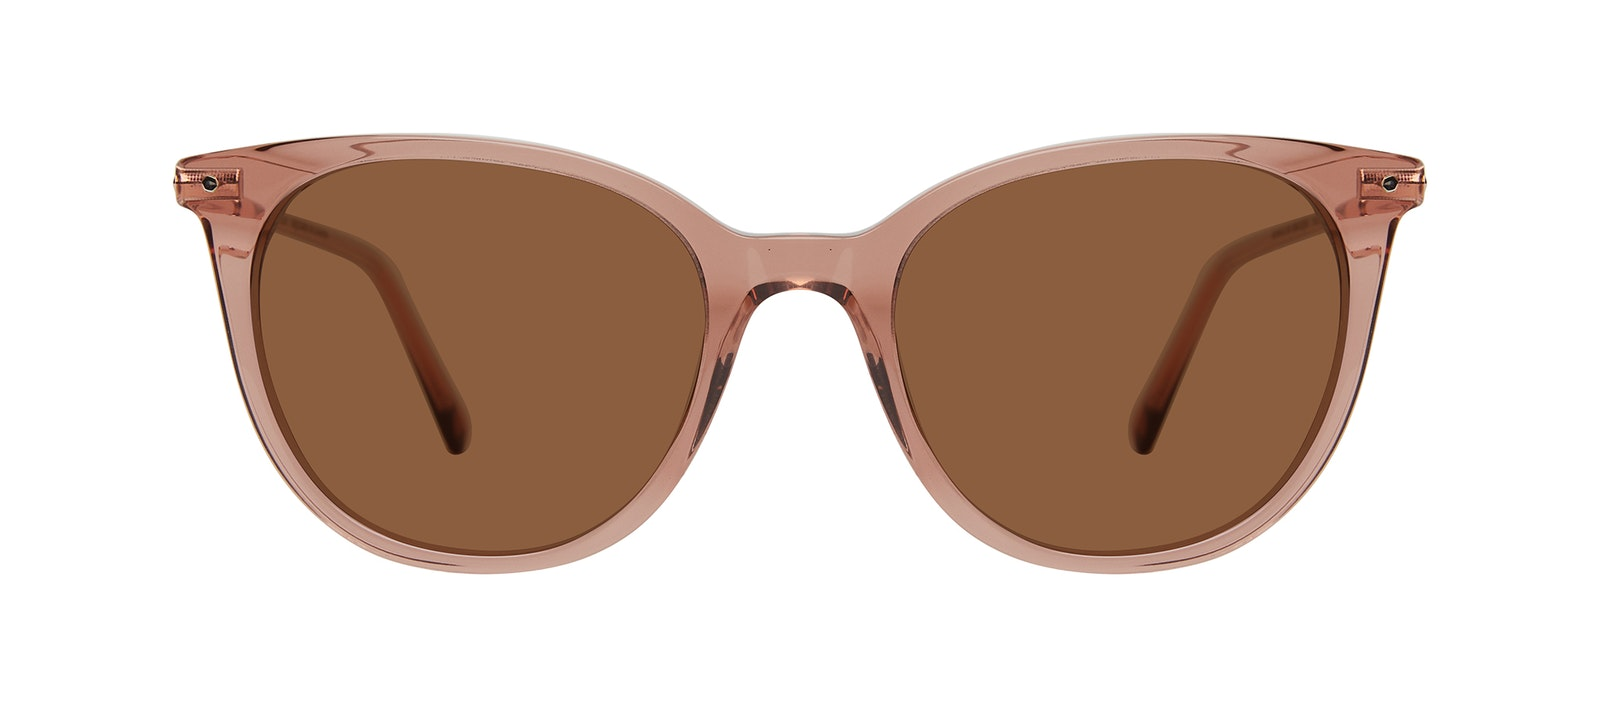 Affordable Fashion Glasses Square Sunglasses Women Wordly Rose Front